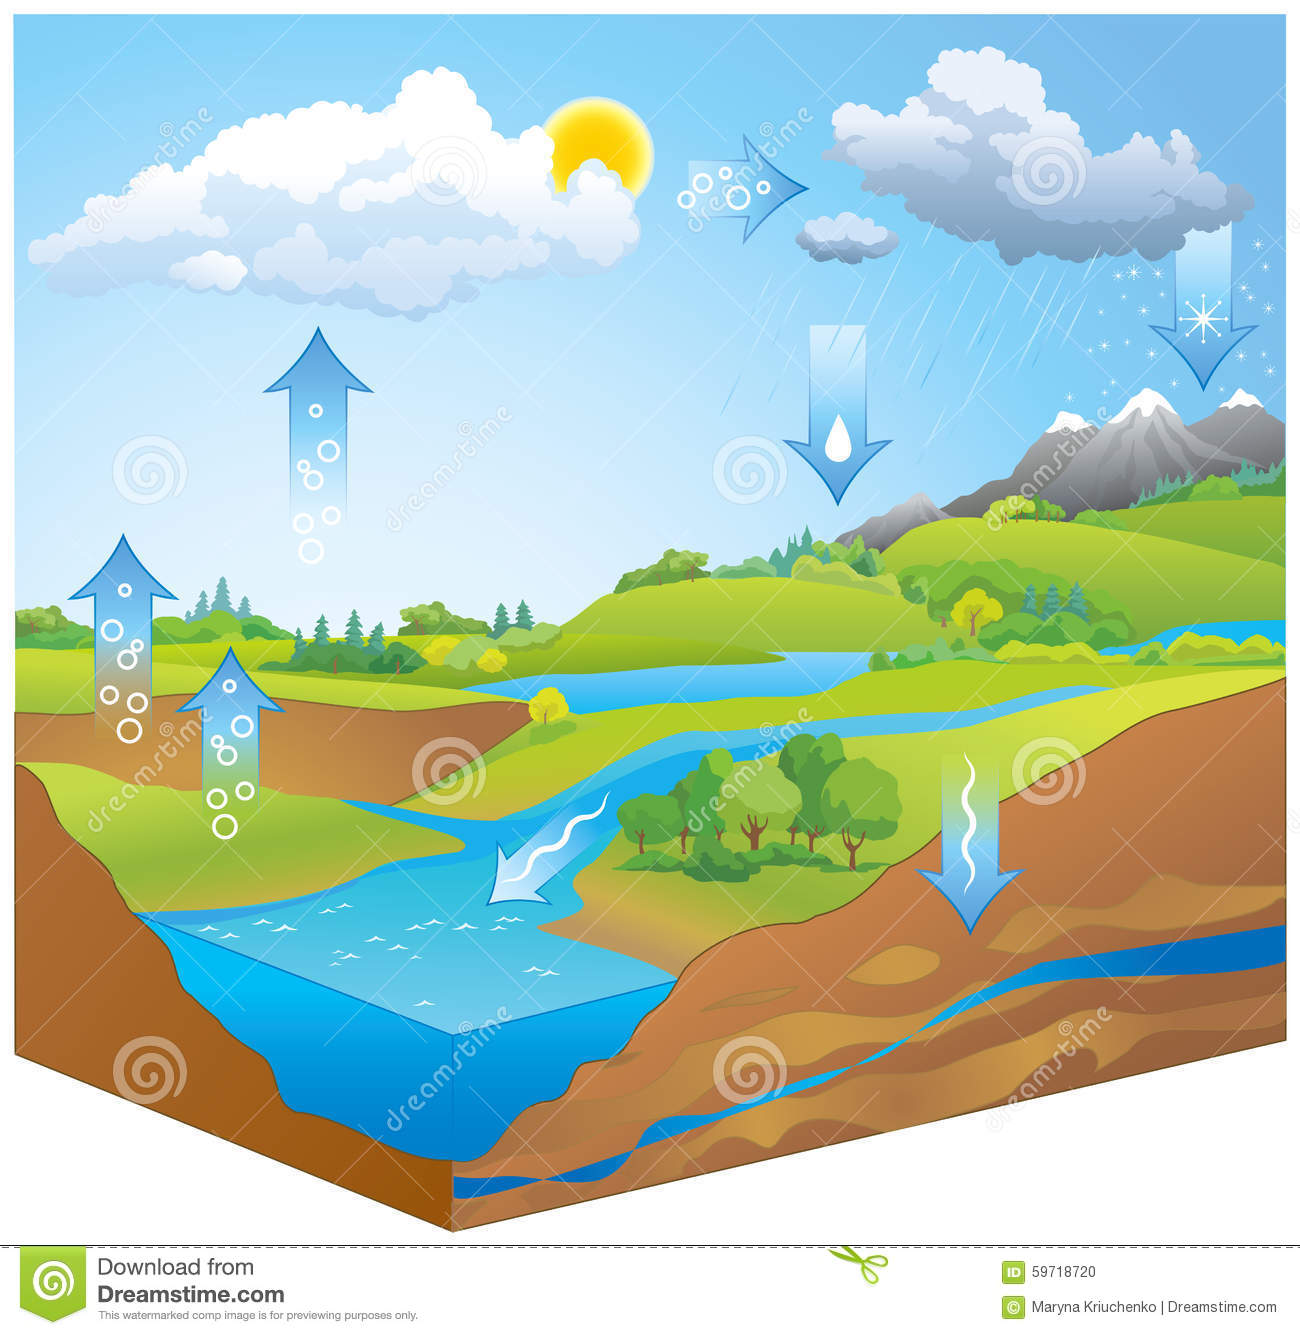 water cycle vector diagram stock vector image 59718720. Black Bedroom Furniture Sets. Home Design Ideas